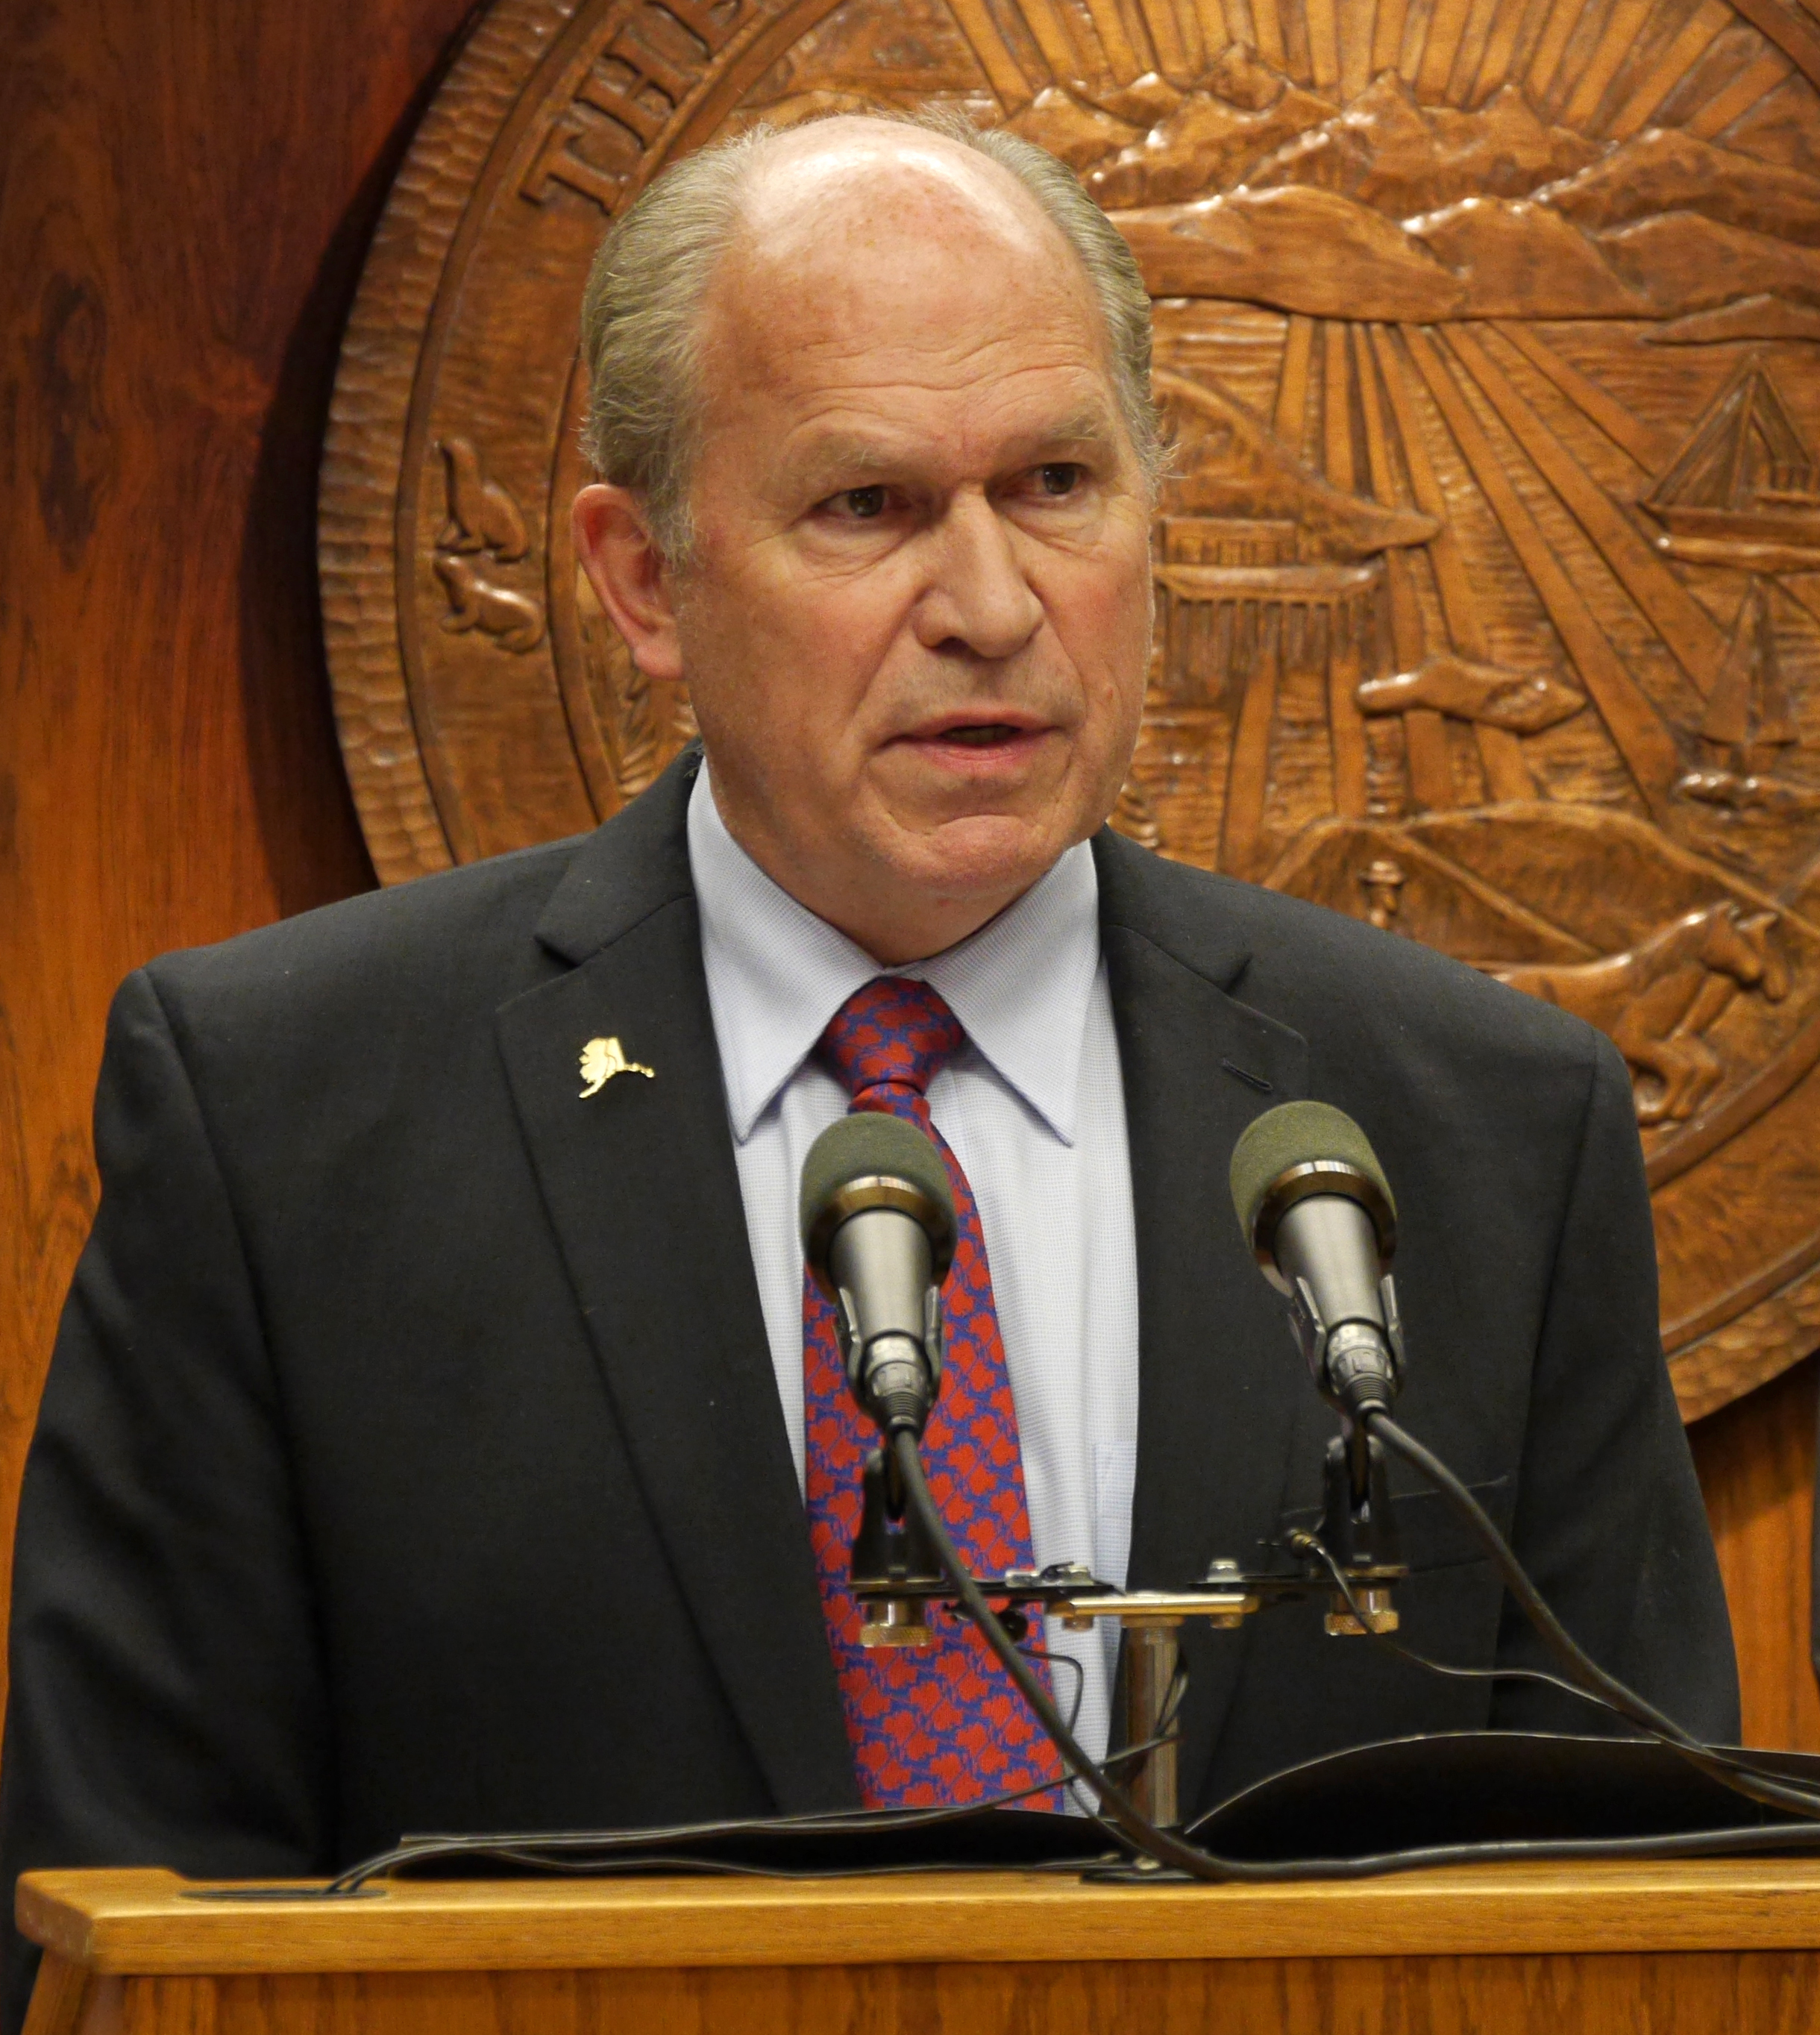 Gov. Bill Walker at a press availability, January 28, 2016. Walker has remained hopeful about the passing of an oil and gas tax bill. (File photo by Skip Gray, 360 North)